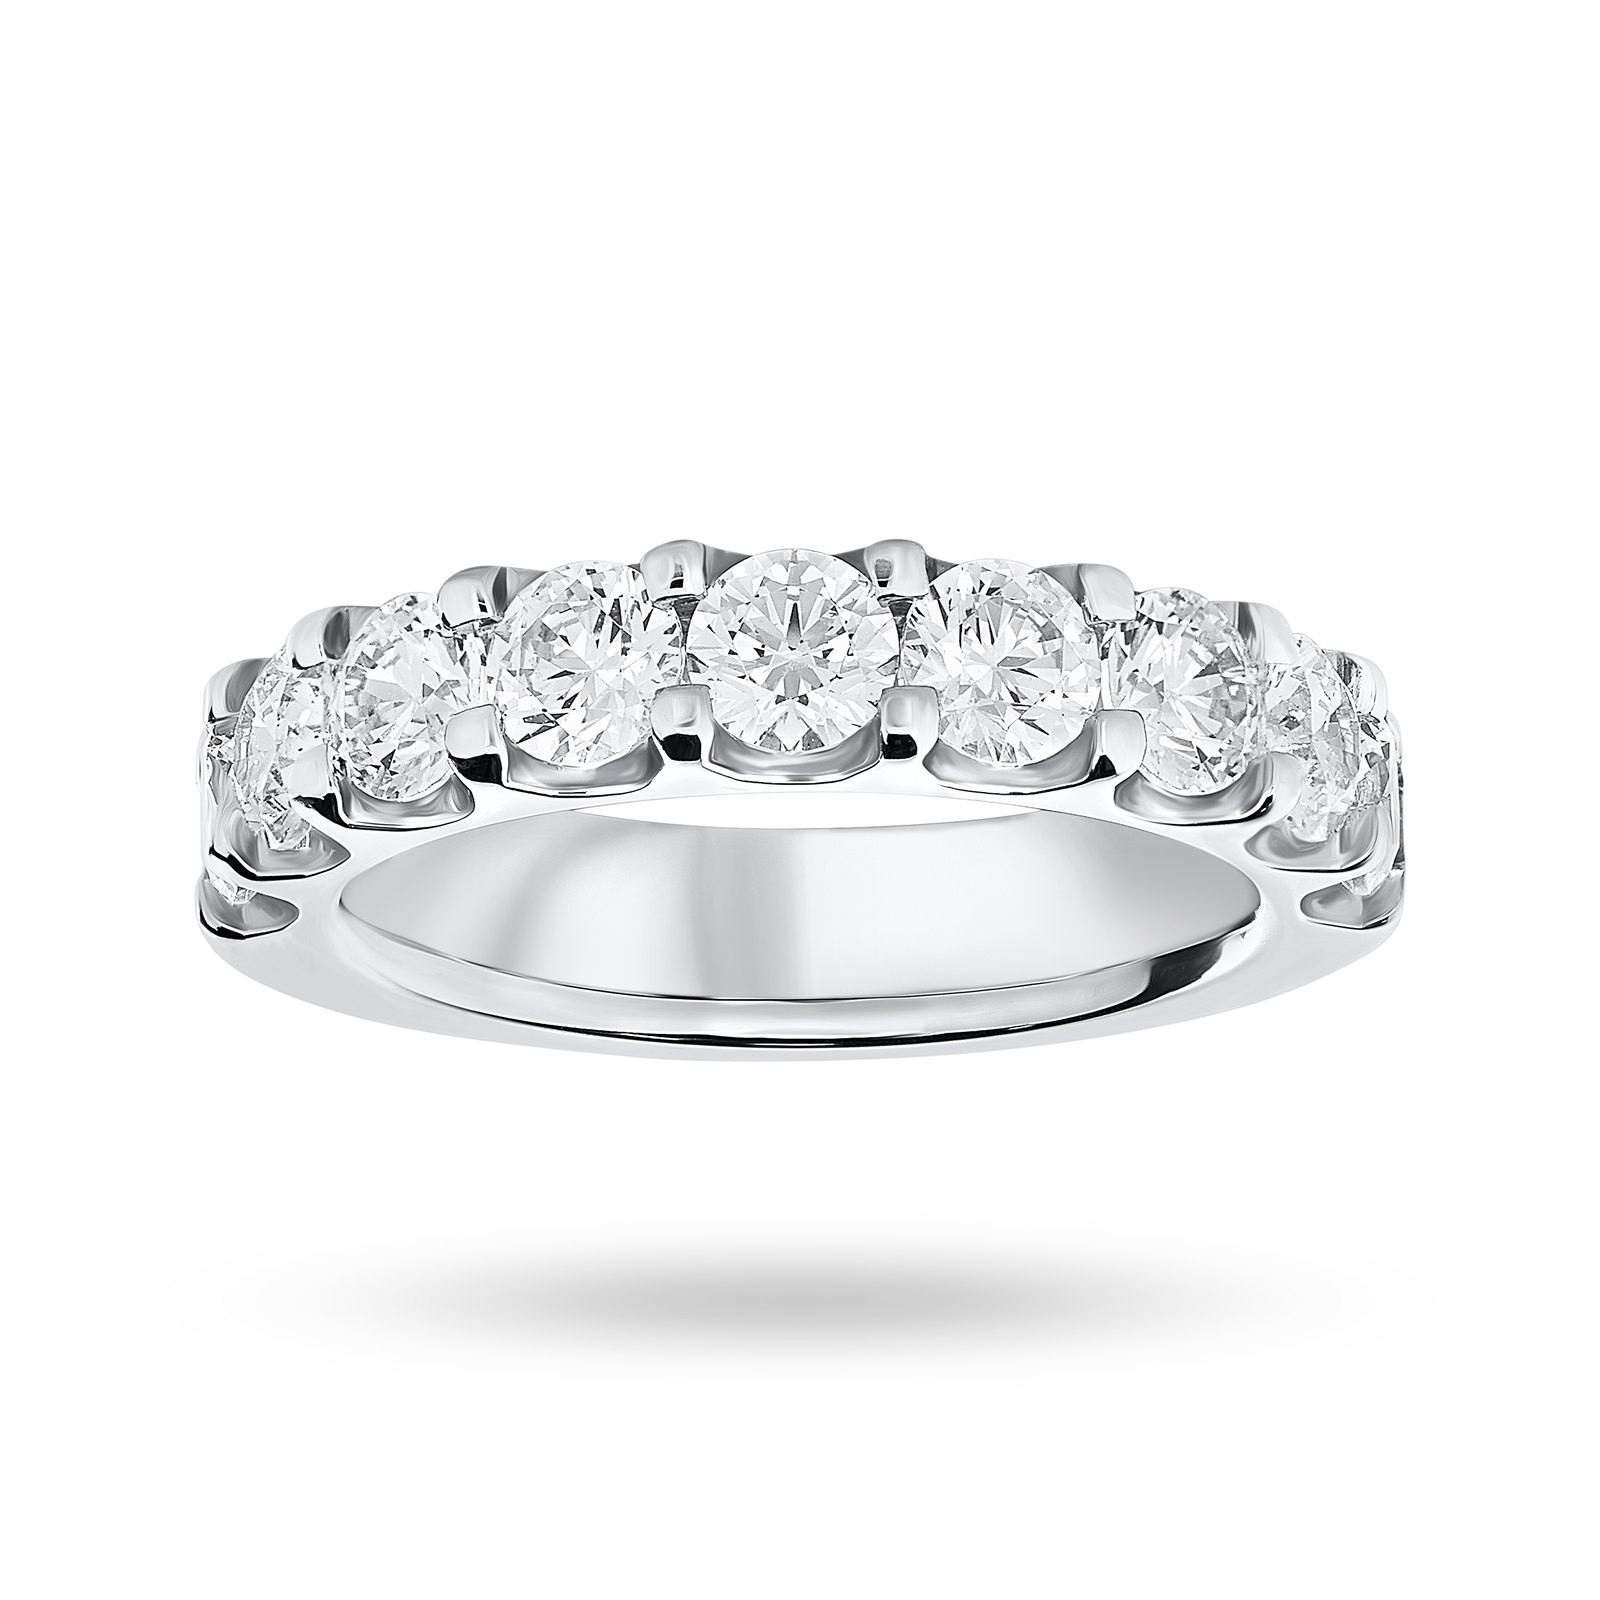 Platinum 2.10 Carat Brilliant Cut Half Eternity